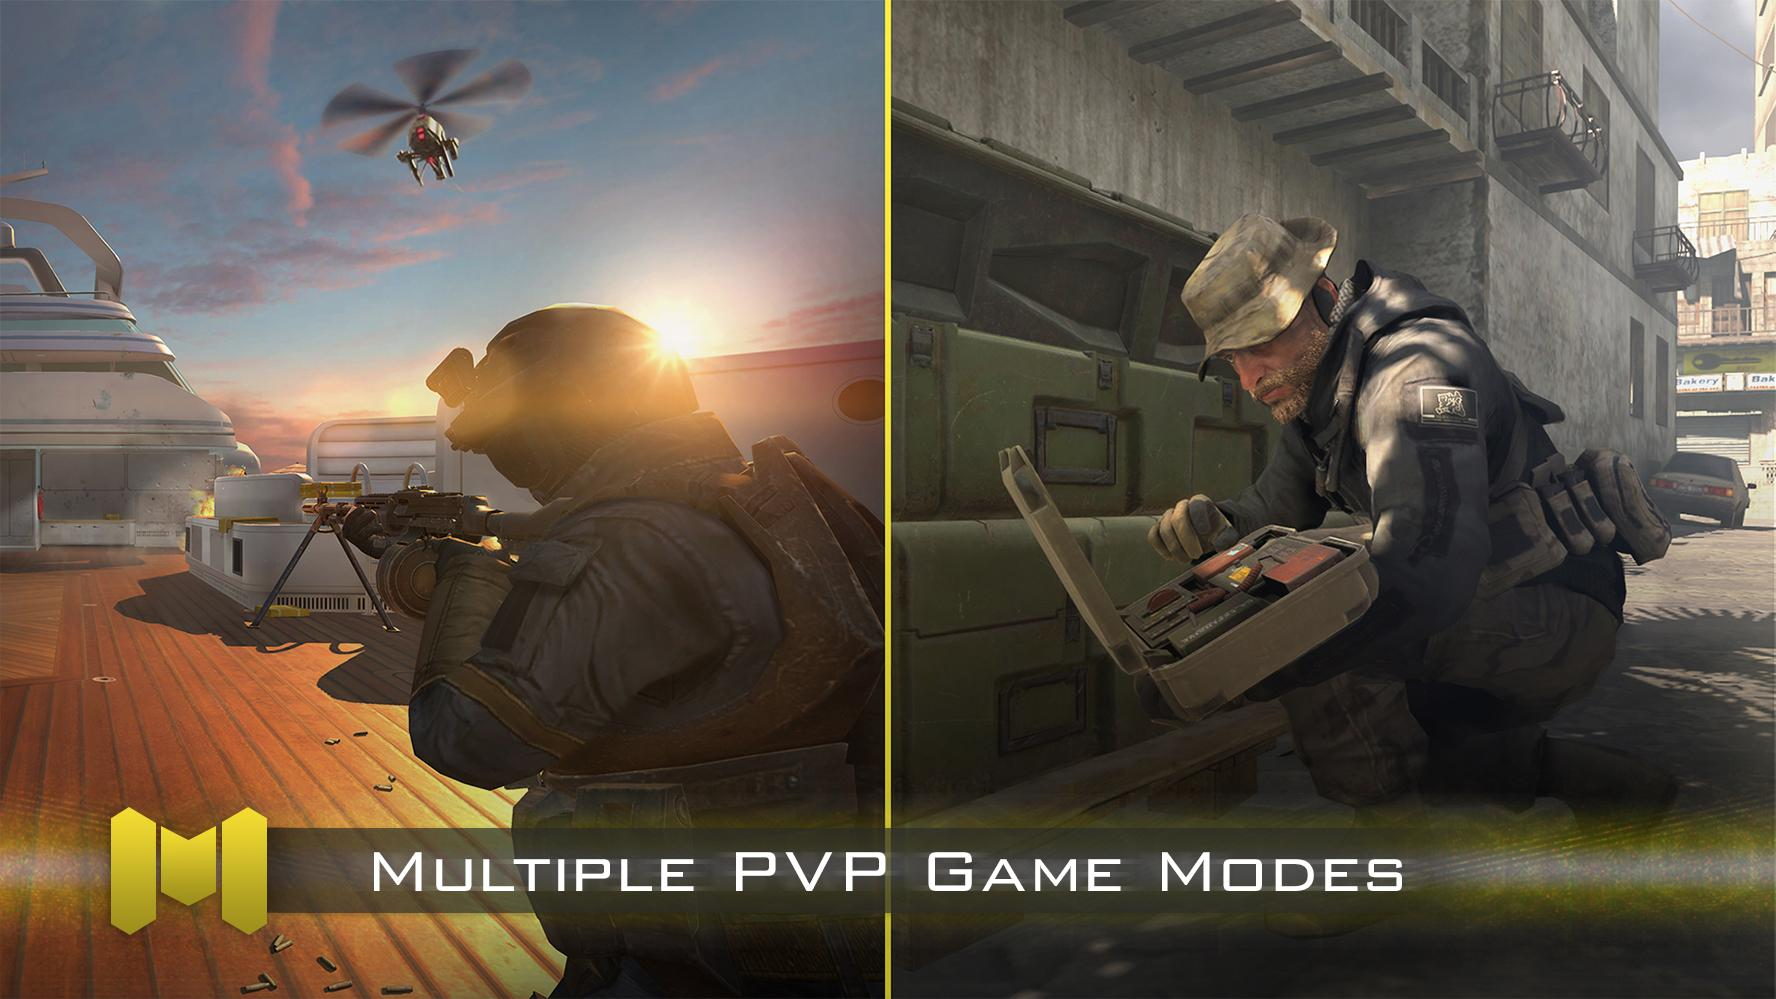 Download Call of Duty: Mobile on PC with BlueStacks